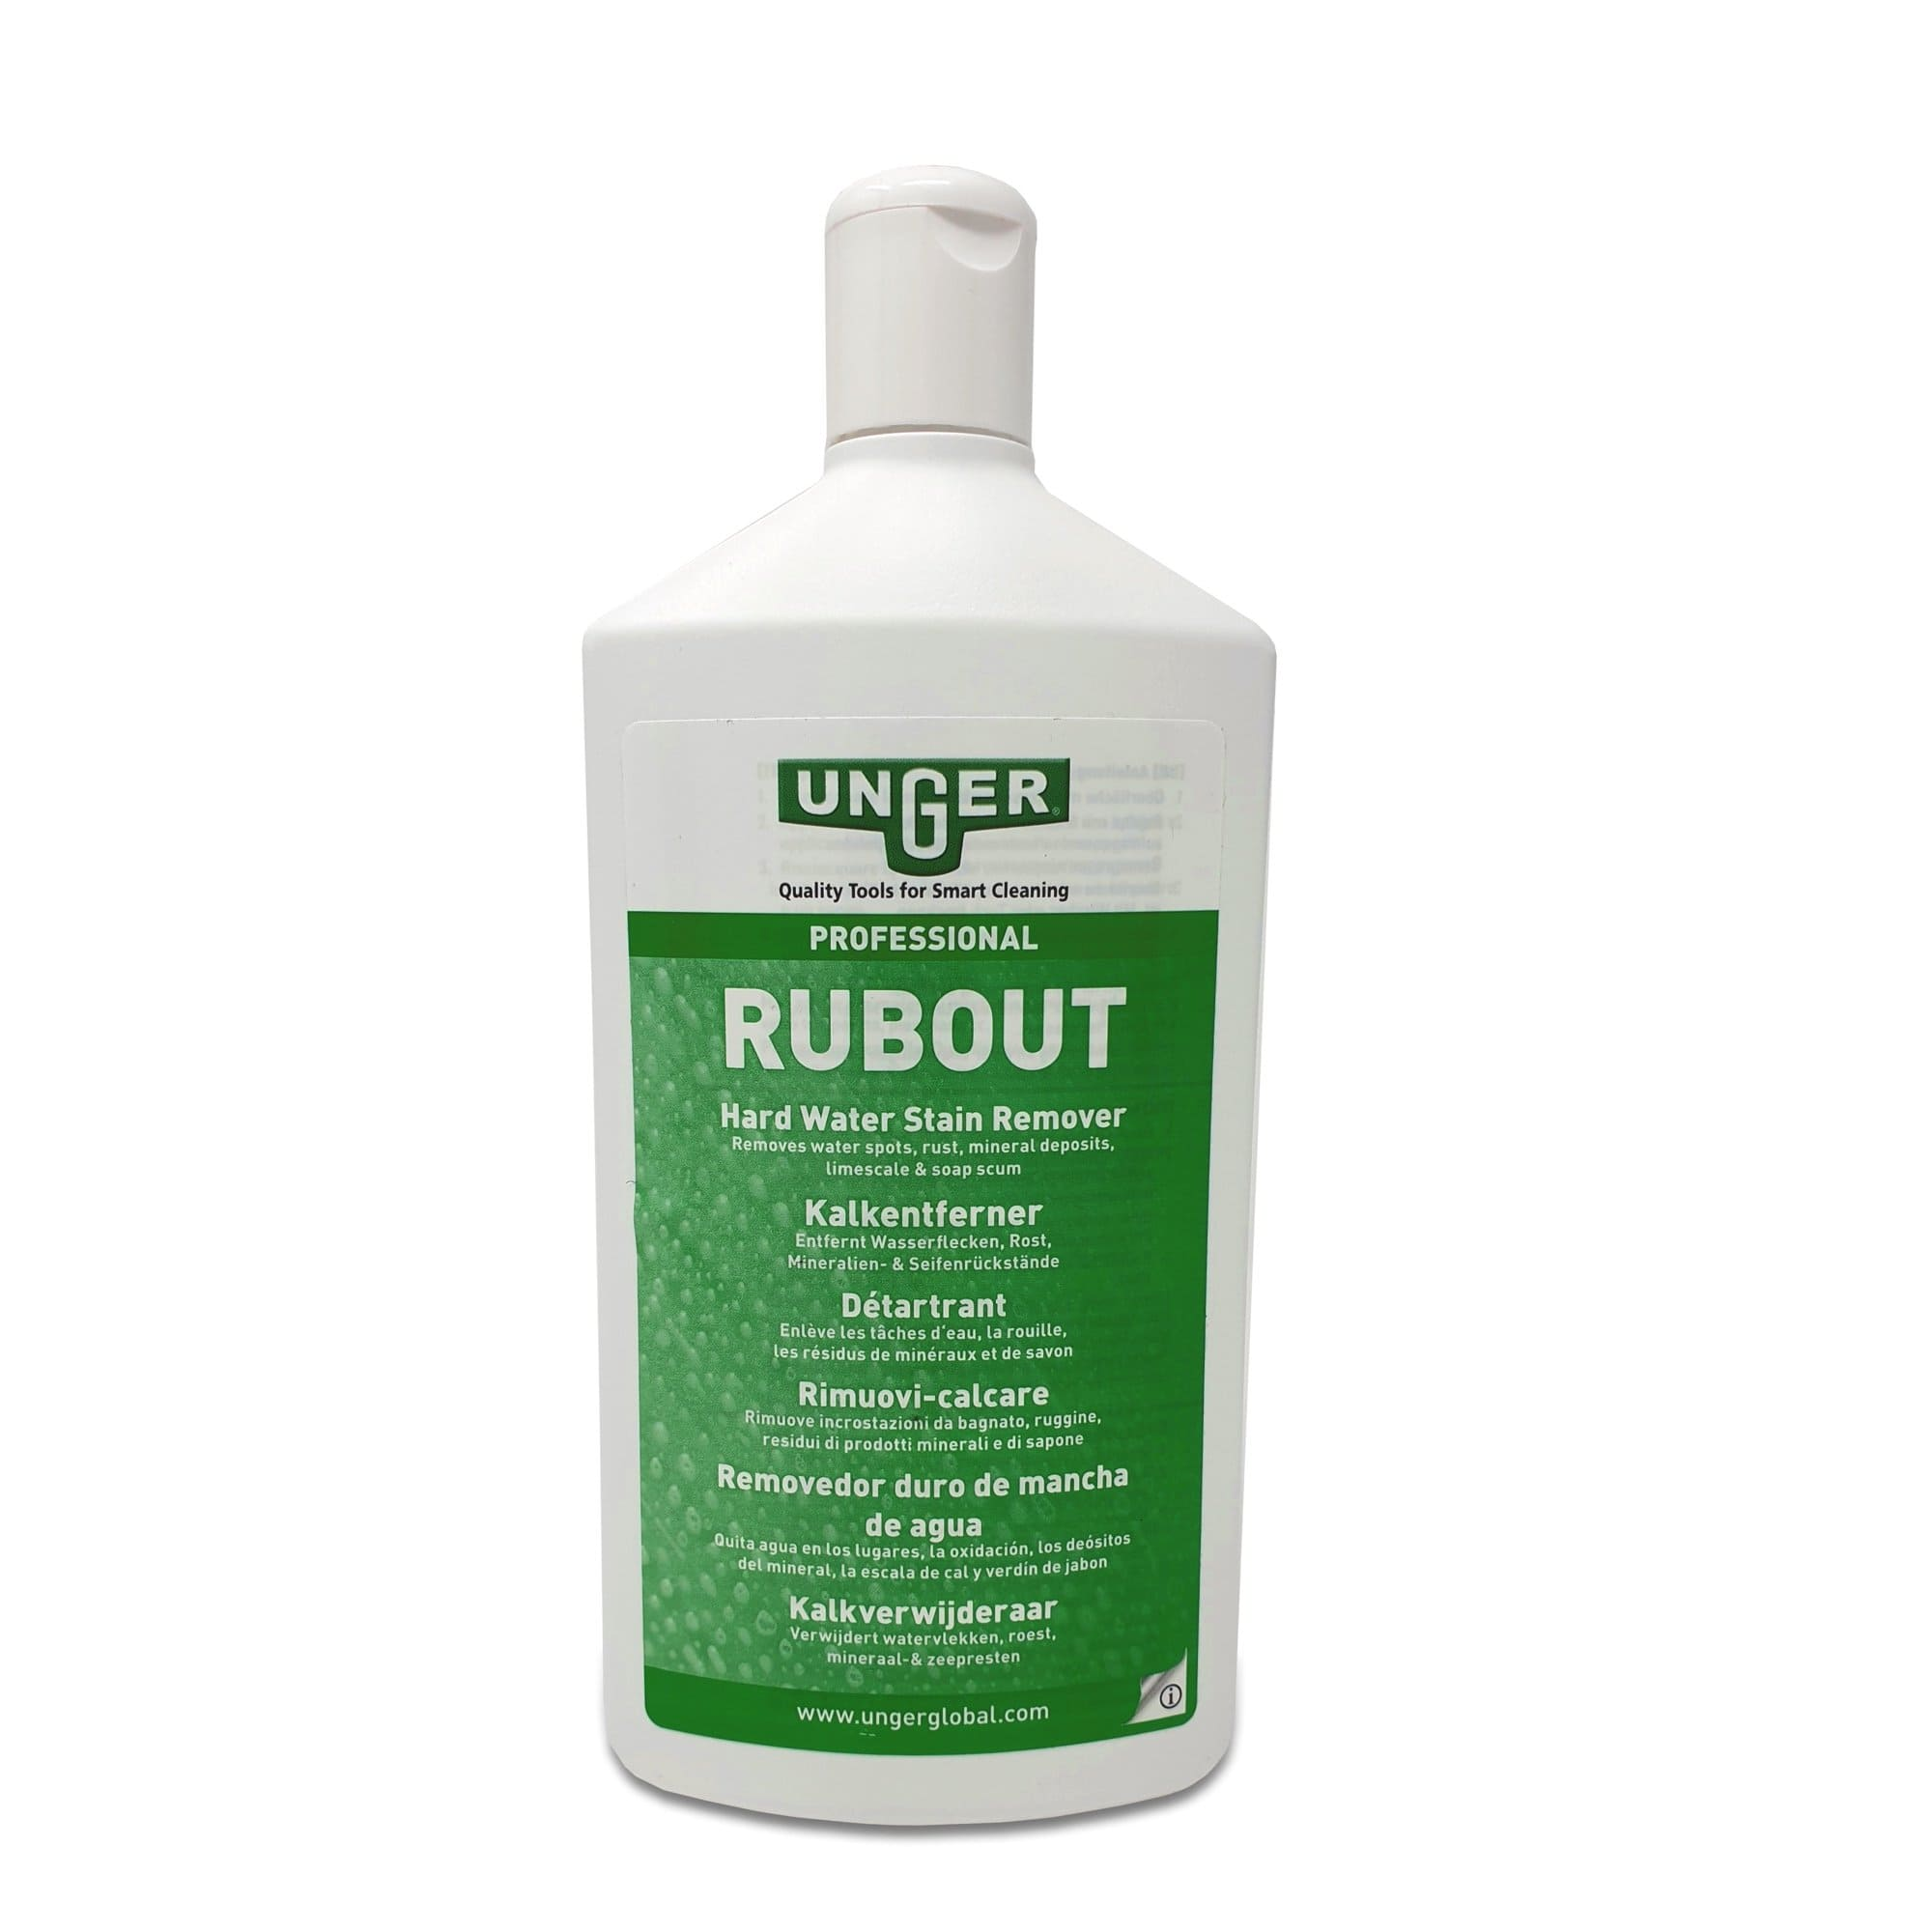 Unger RUBOUT Glass Cleaner - Window Cleaning Warehouse Ltd